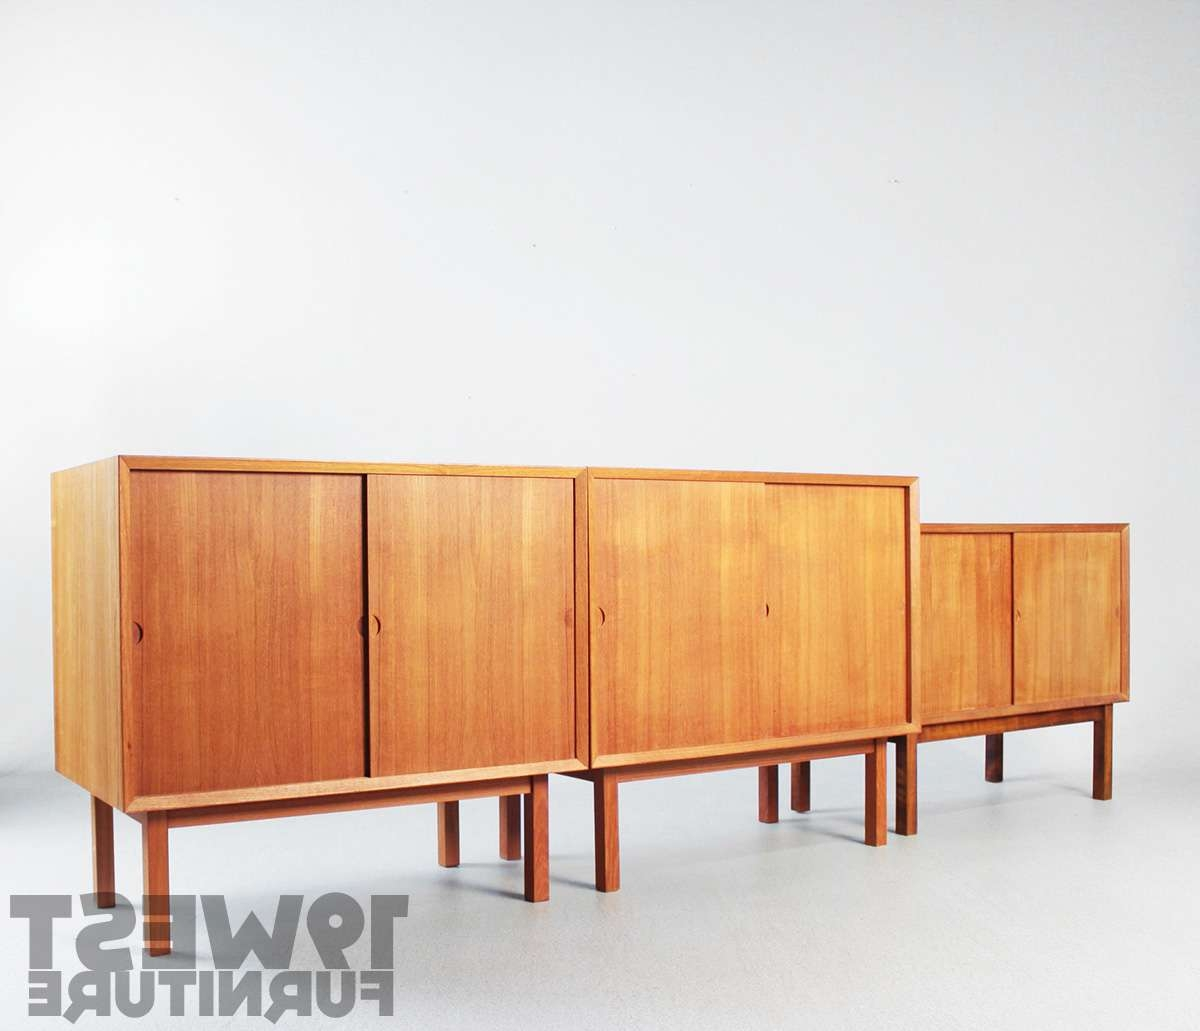 Kleine Sideboards, Poul Cadovius | 19 West Pertaining To Kleine Sideboards (View 8 of 20)